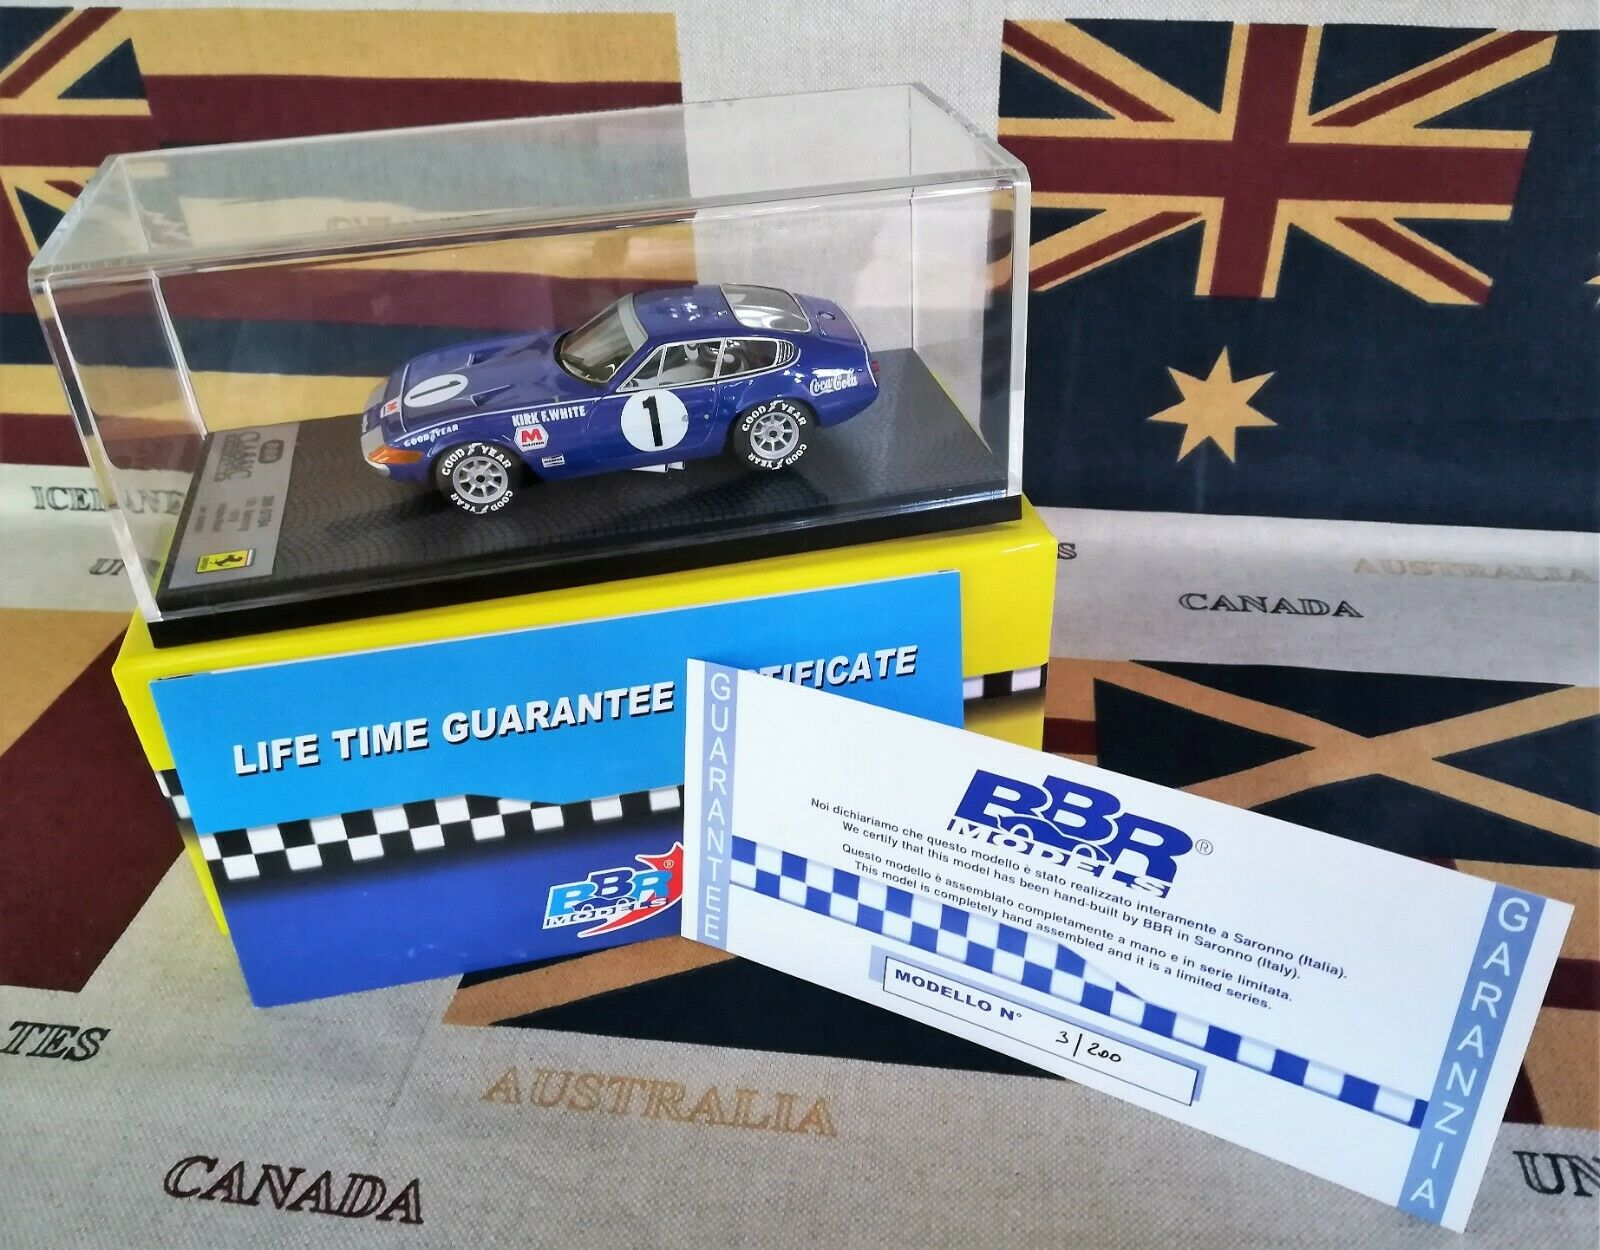 1 43 BBR bc49 Ferrari 365 GTB 12 H. Sebring  1 1972 Ltd. 003 of 200 pcs. AMR